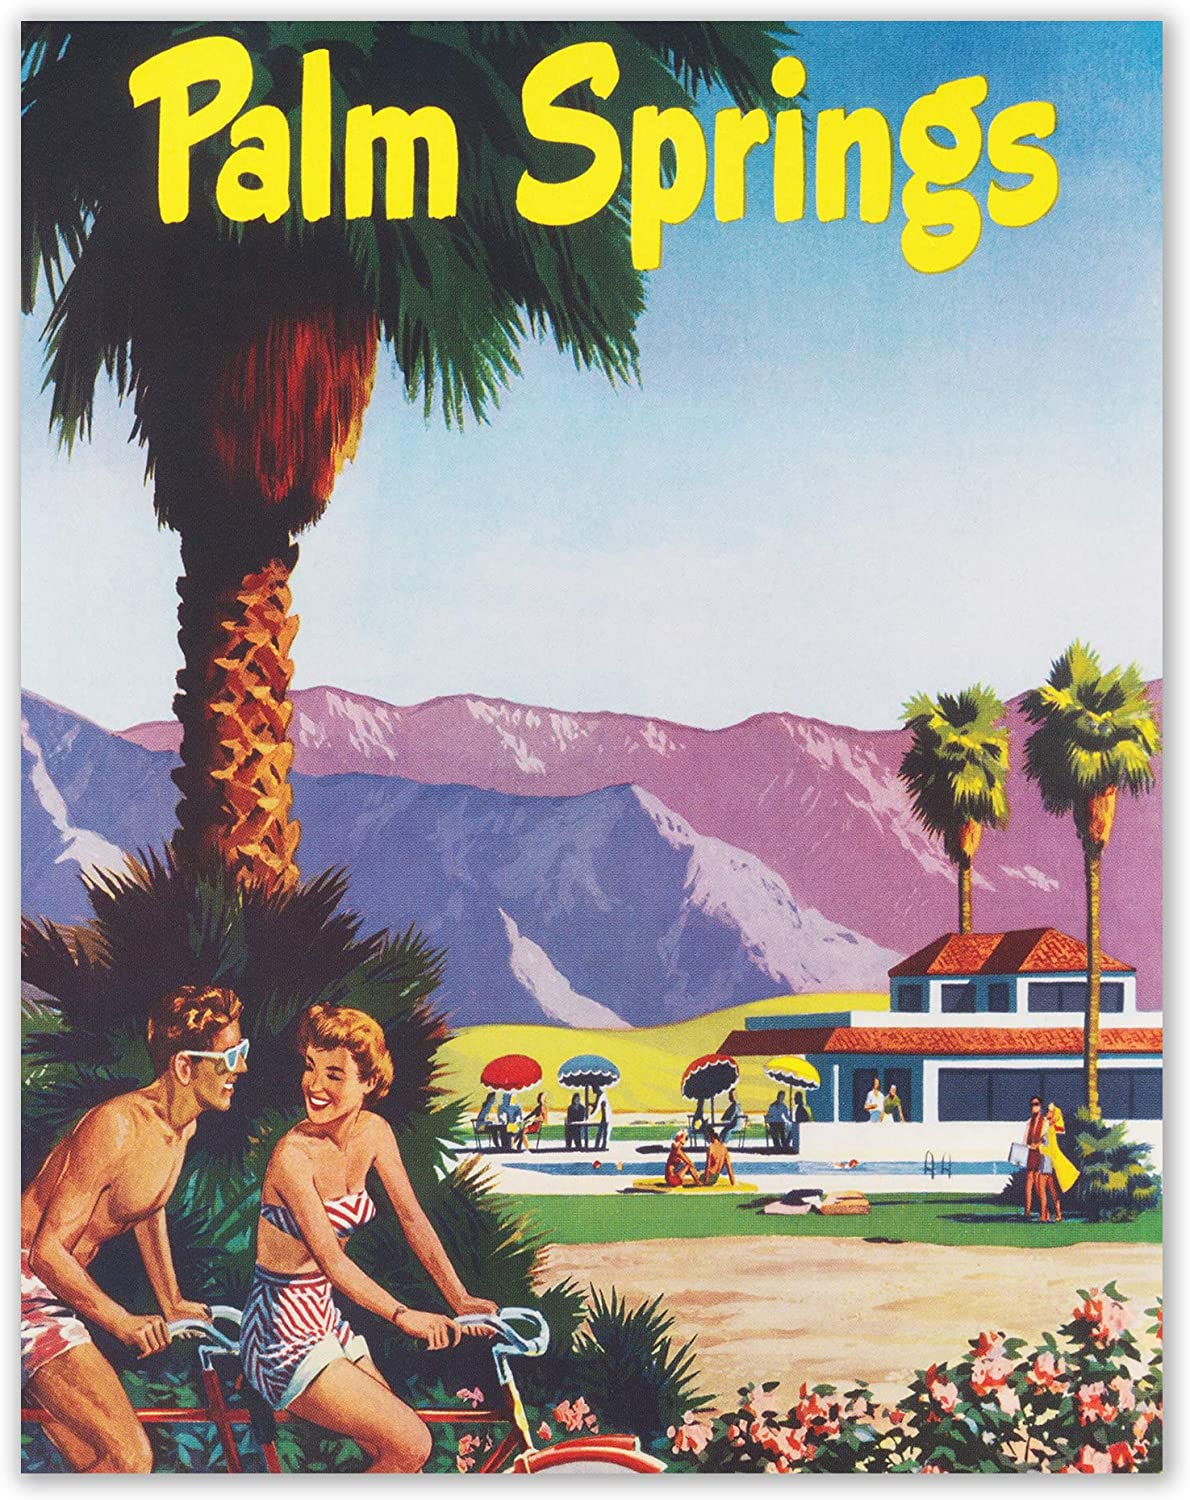 Insire Vintage California Poster Prints - Set of 1 Unframed (11x14 inches) Retro Palm Springs Wall Art Decor - United States Prints For Home, Room, Bedroom, Office, Decorations